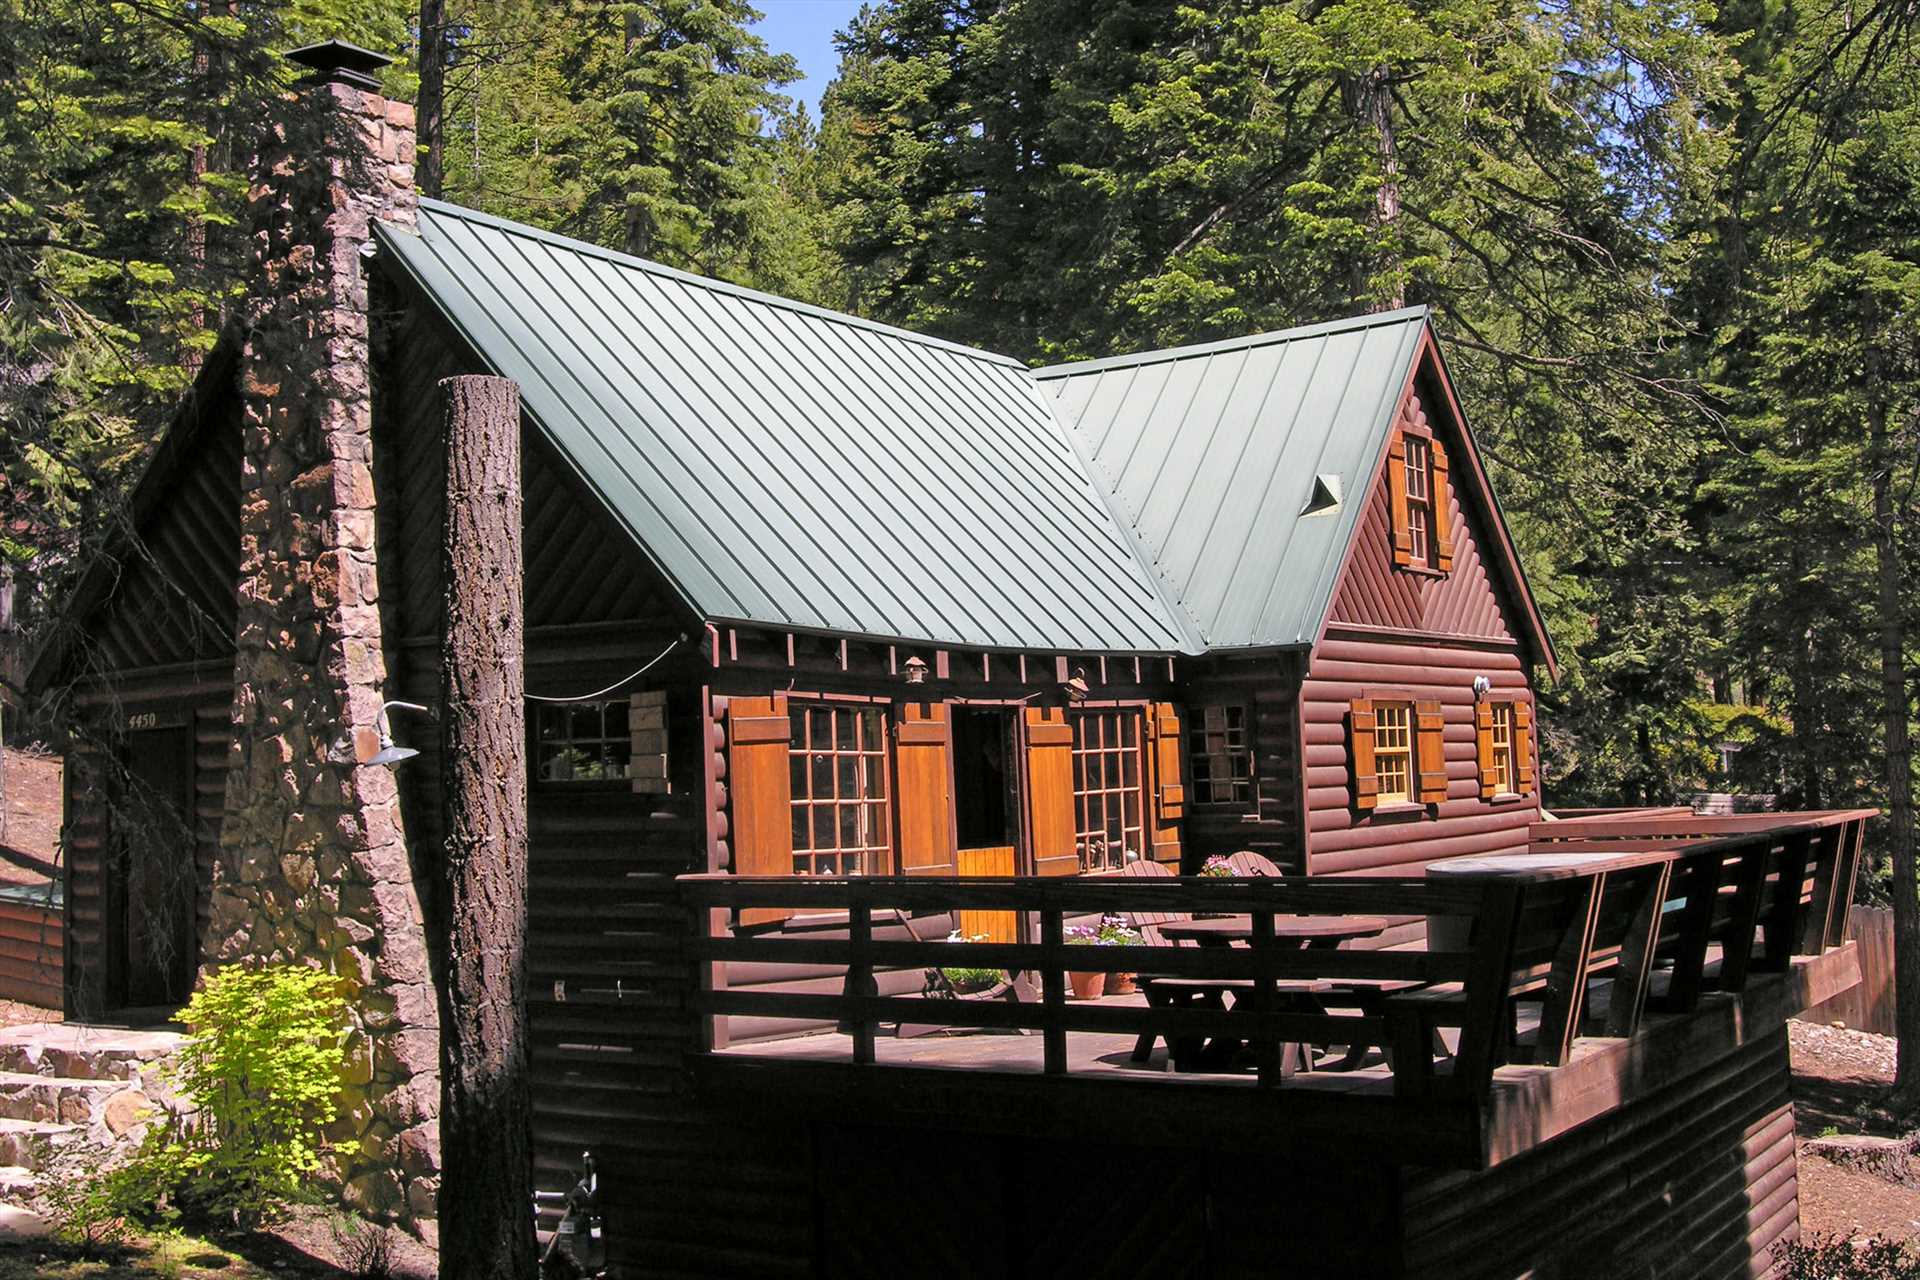 Gundy 39 s getaway 3 bedrooms vacation cabin rental for Rent a cabin in lake tahoe ca